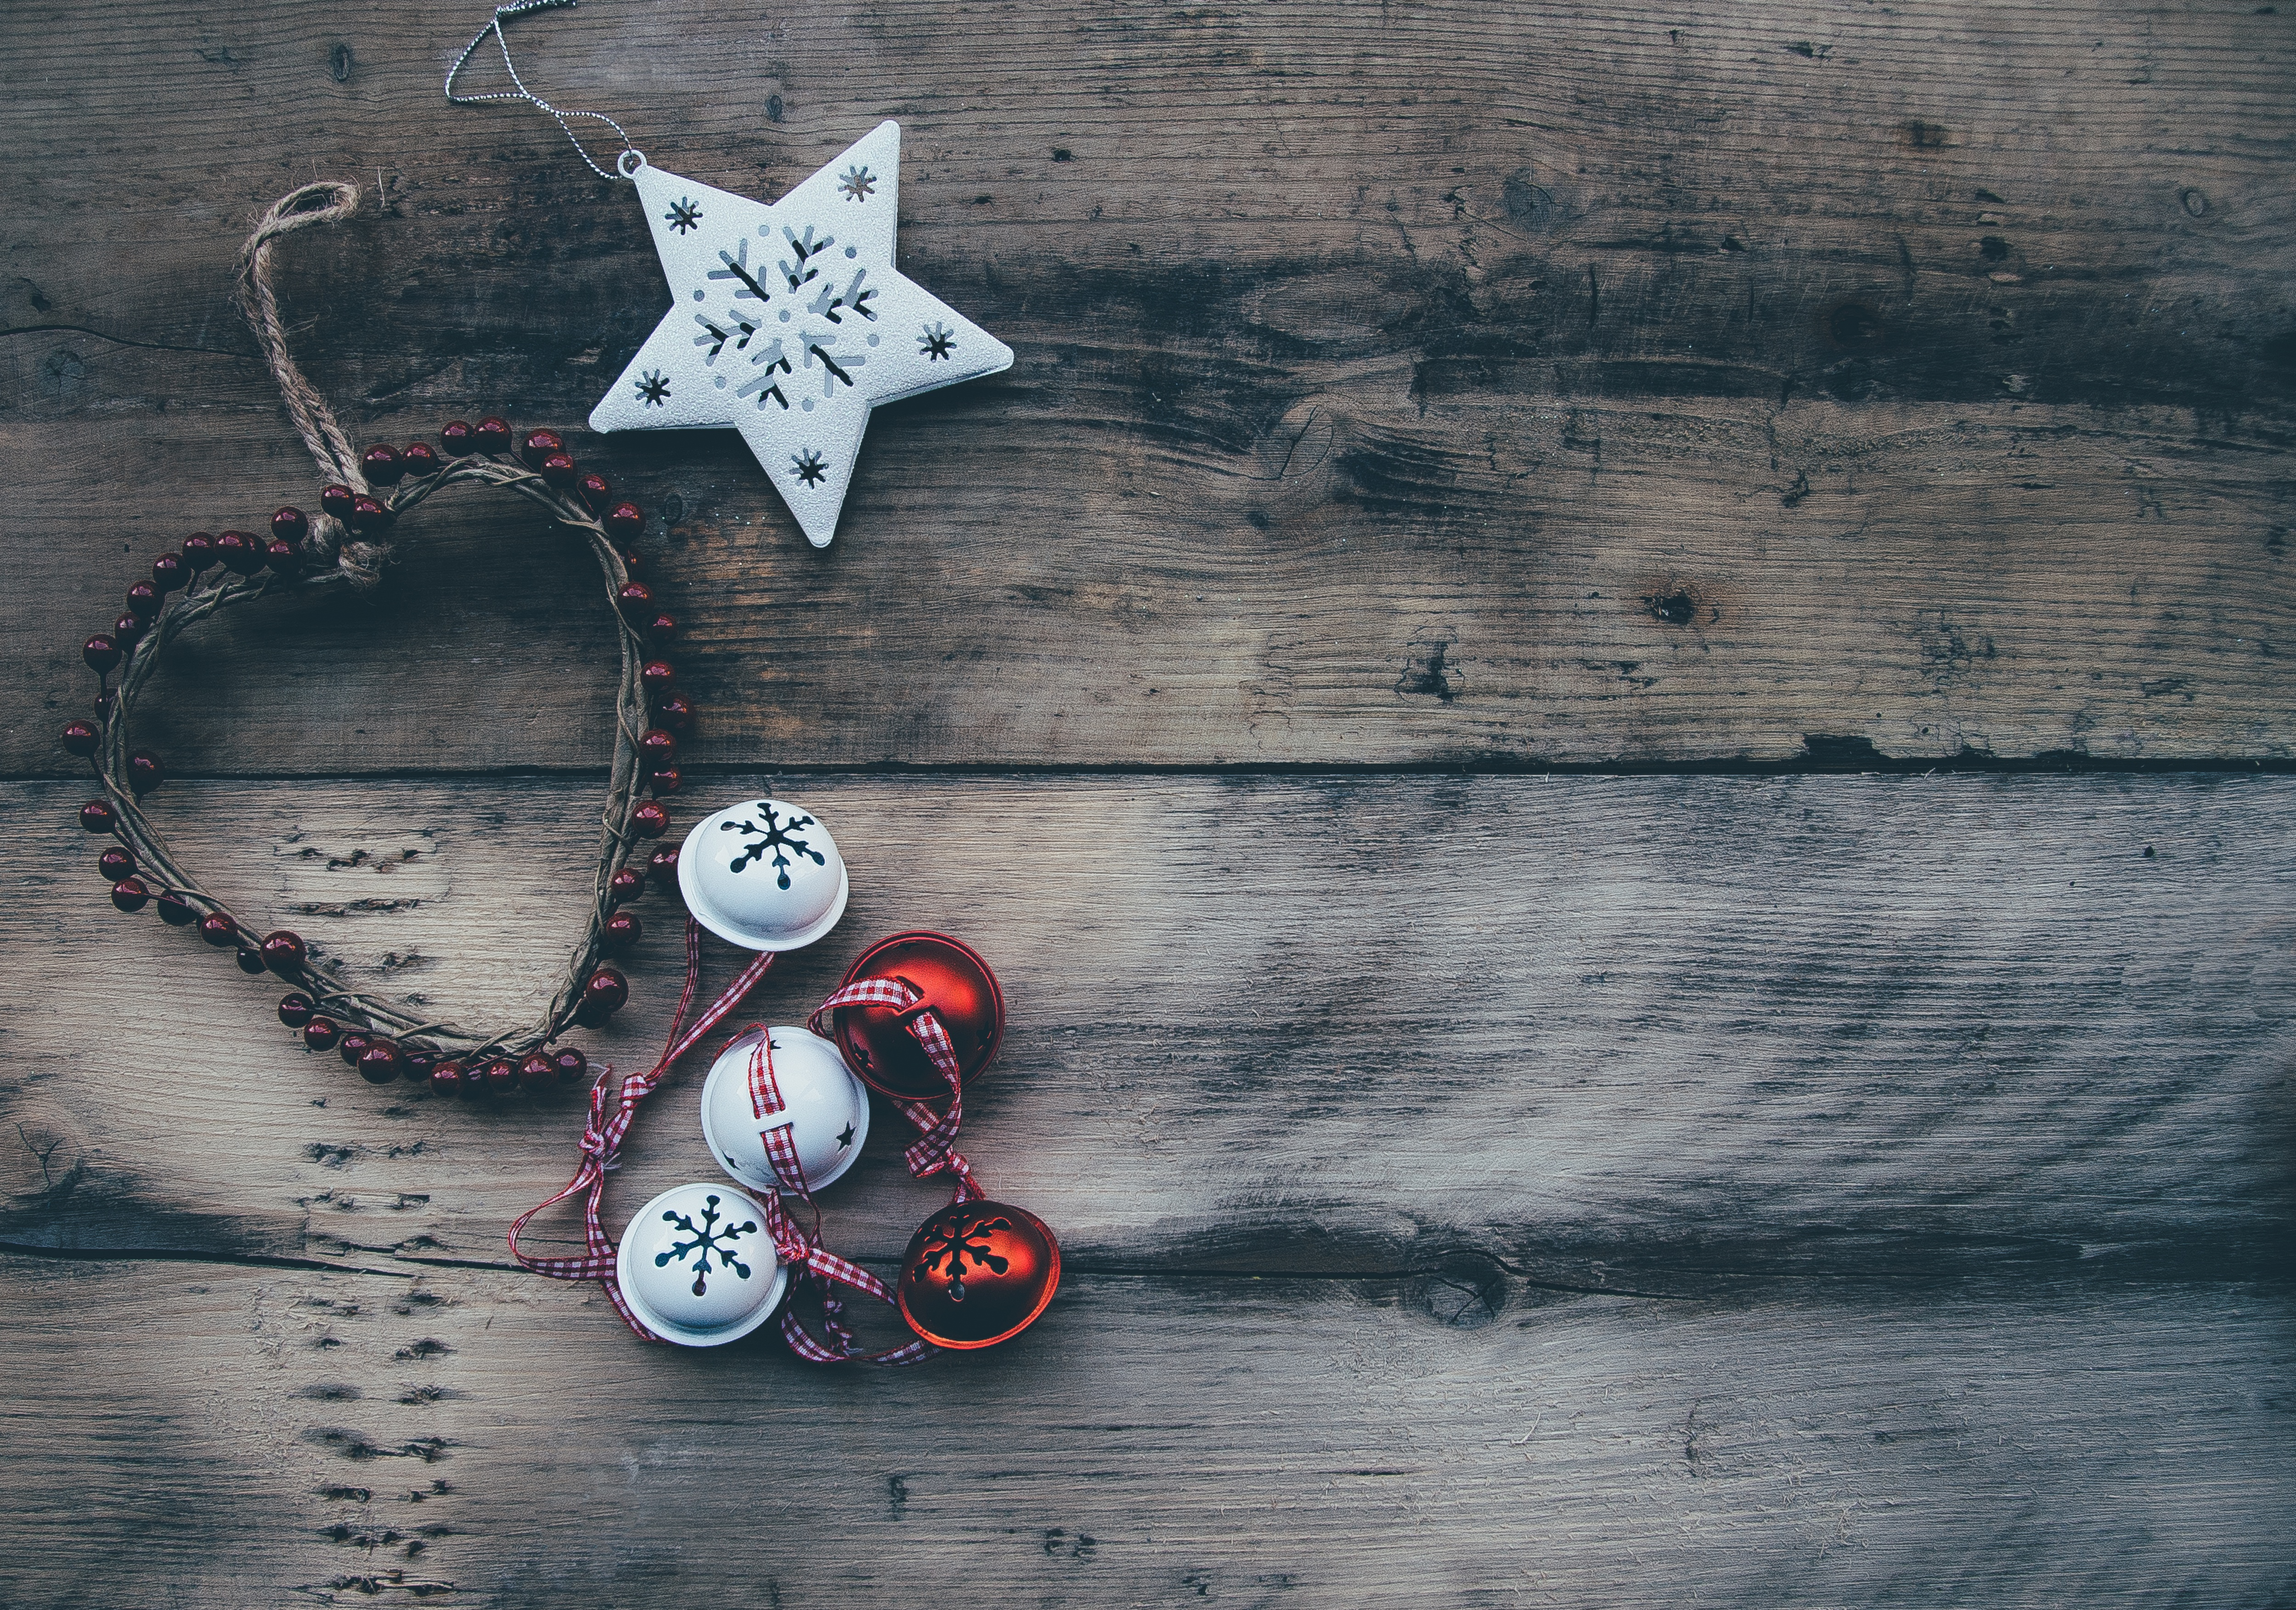 56745 download wallpaper Miscellanea, Miscellaneous, Christmas, Ball, Heart, Ornament, Star screensavers and pictures for free